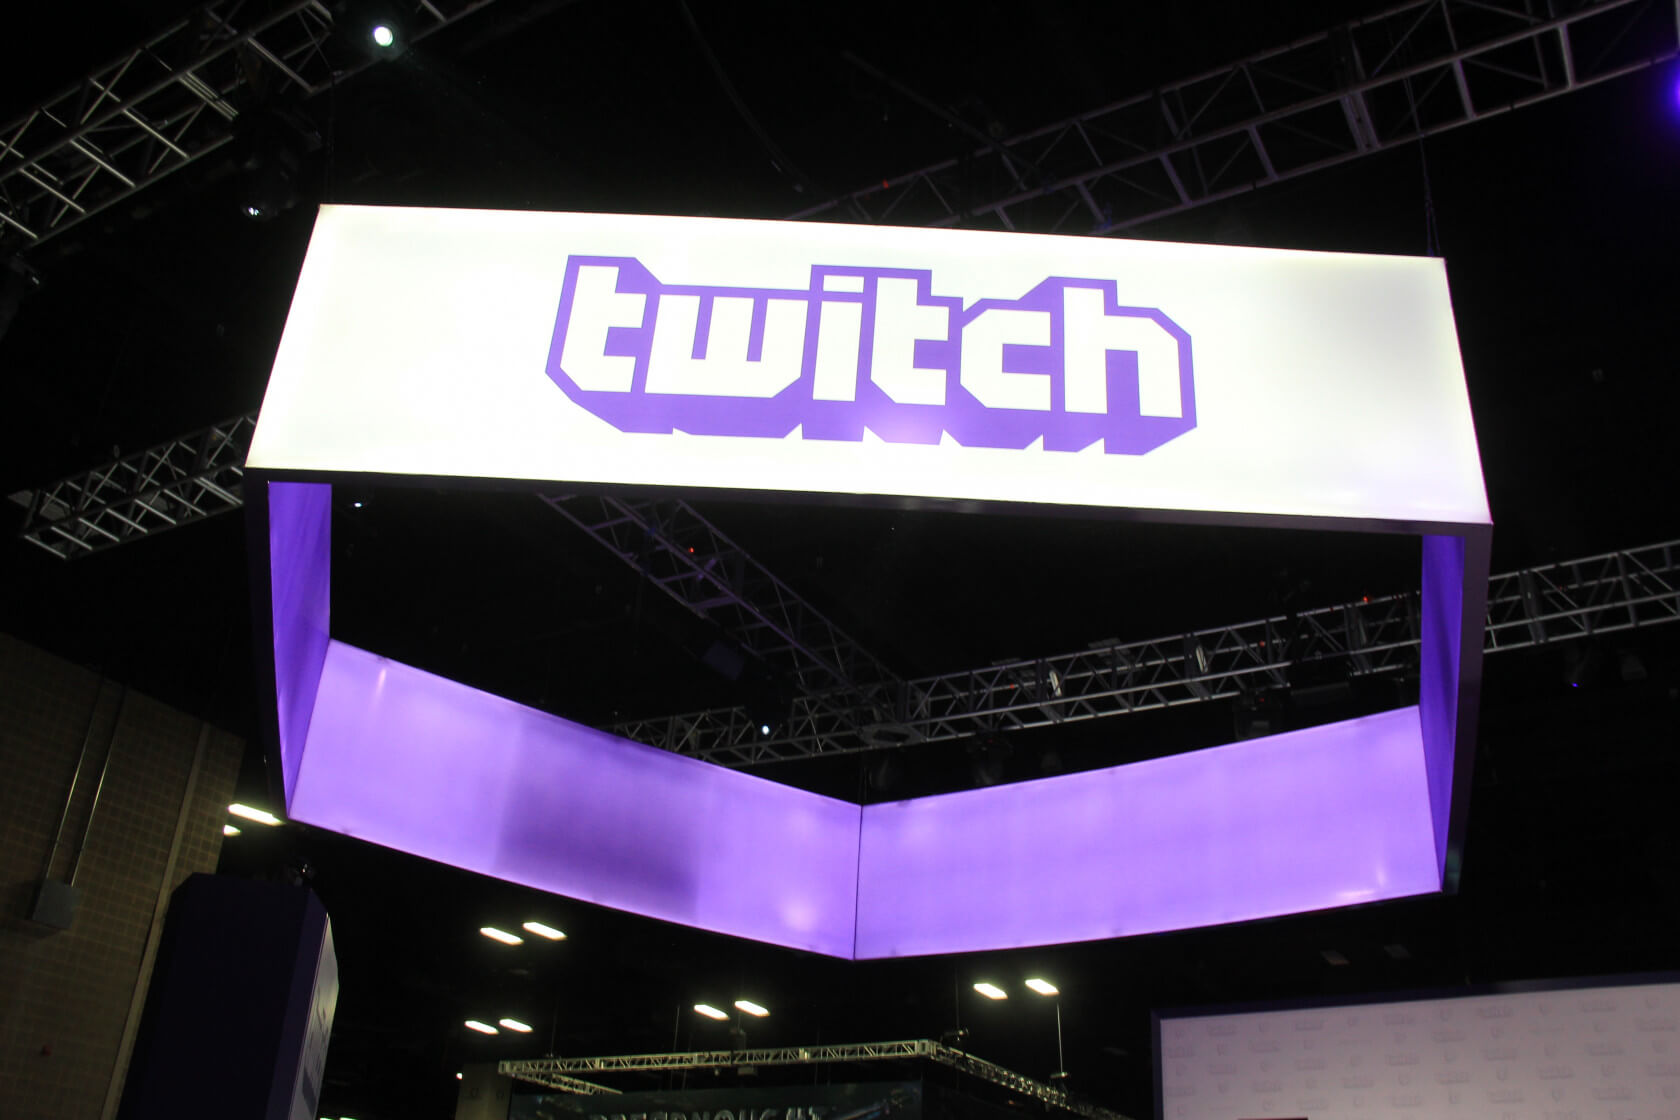 Twitch streamer confirms he makes $500,000 per month